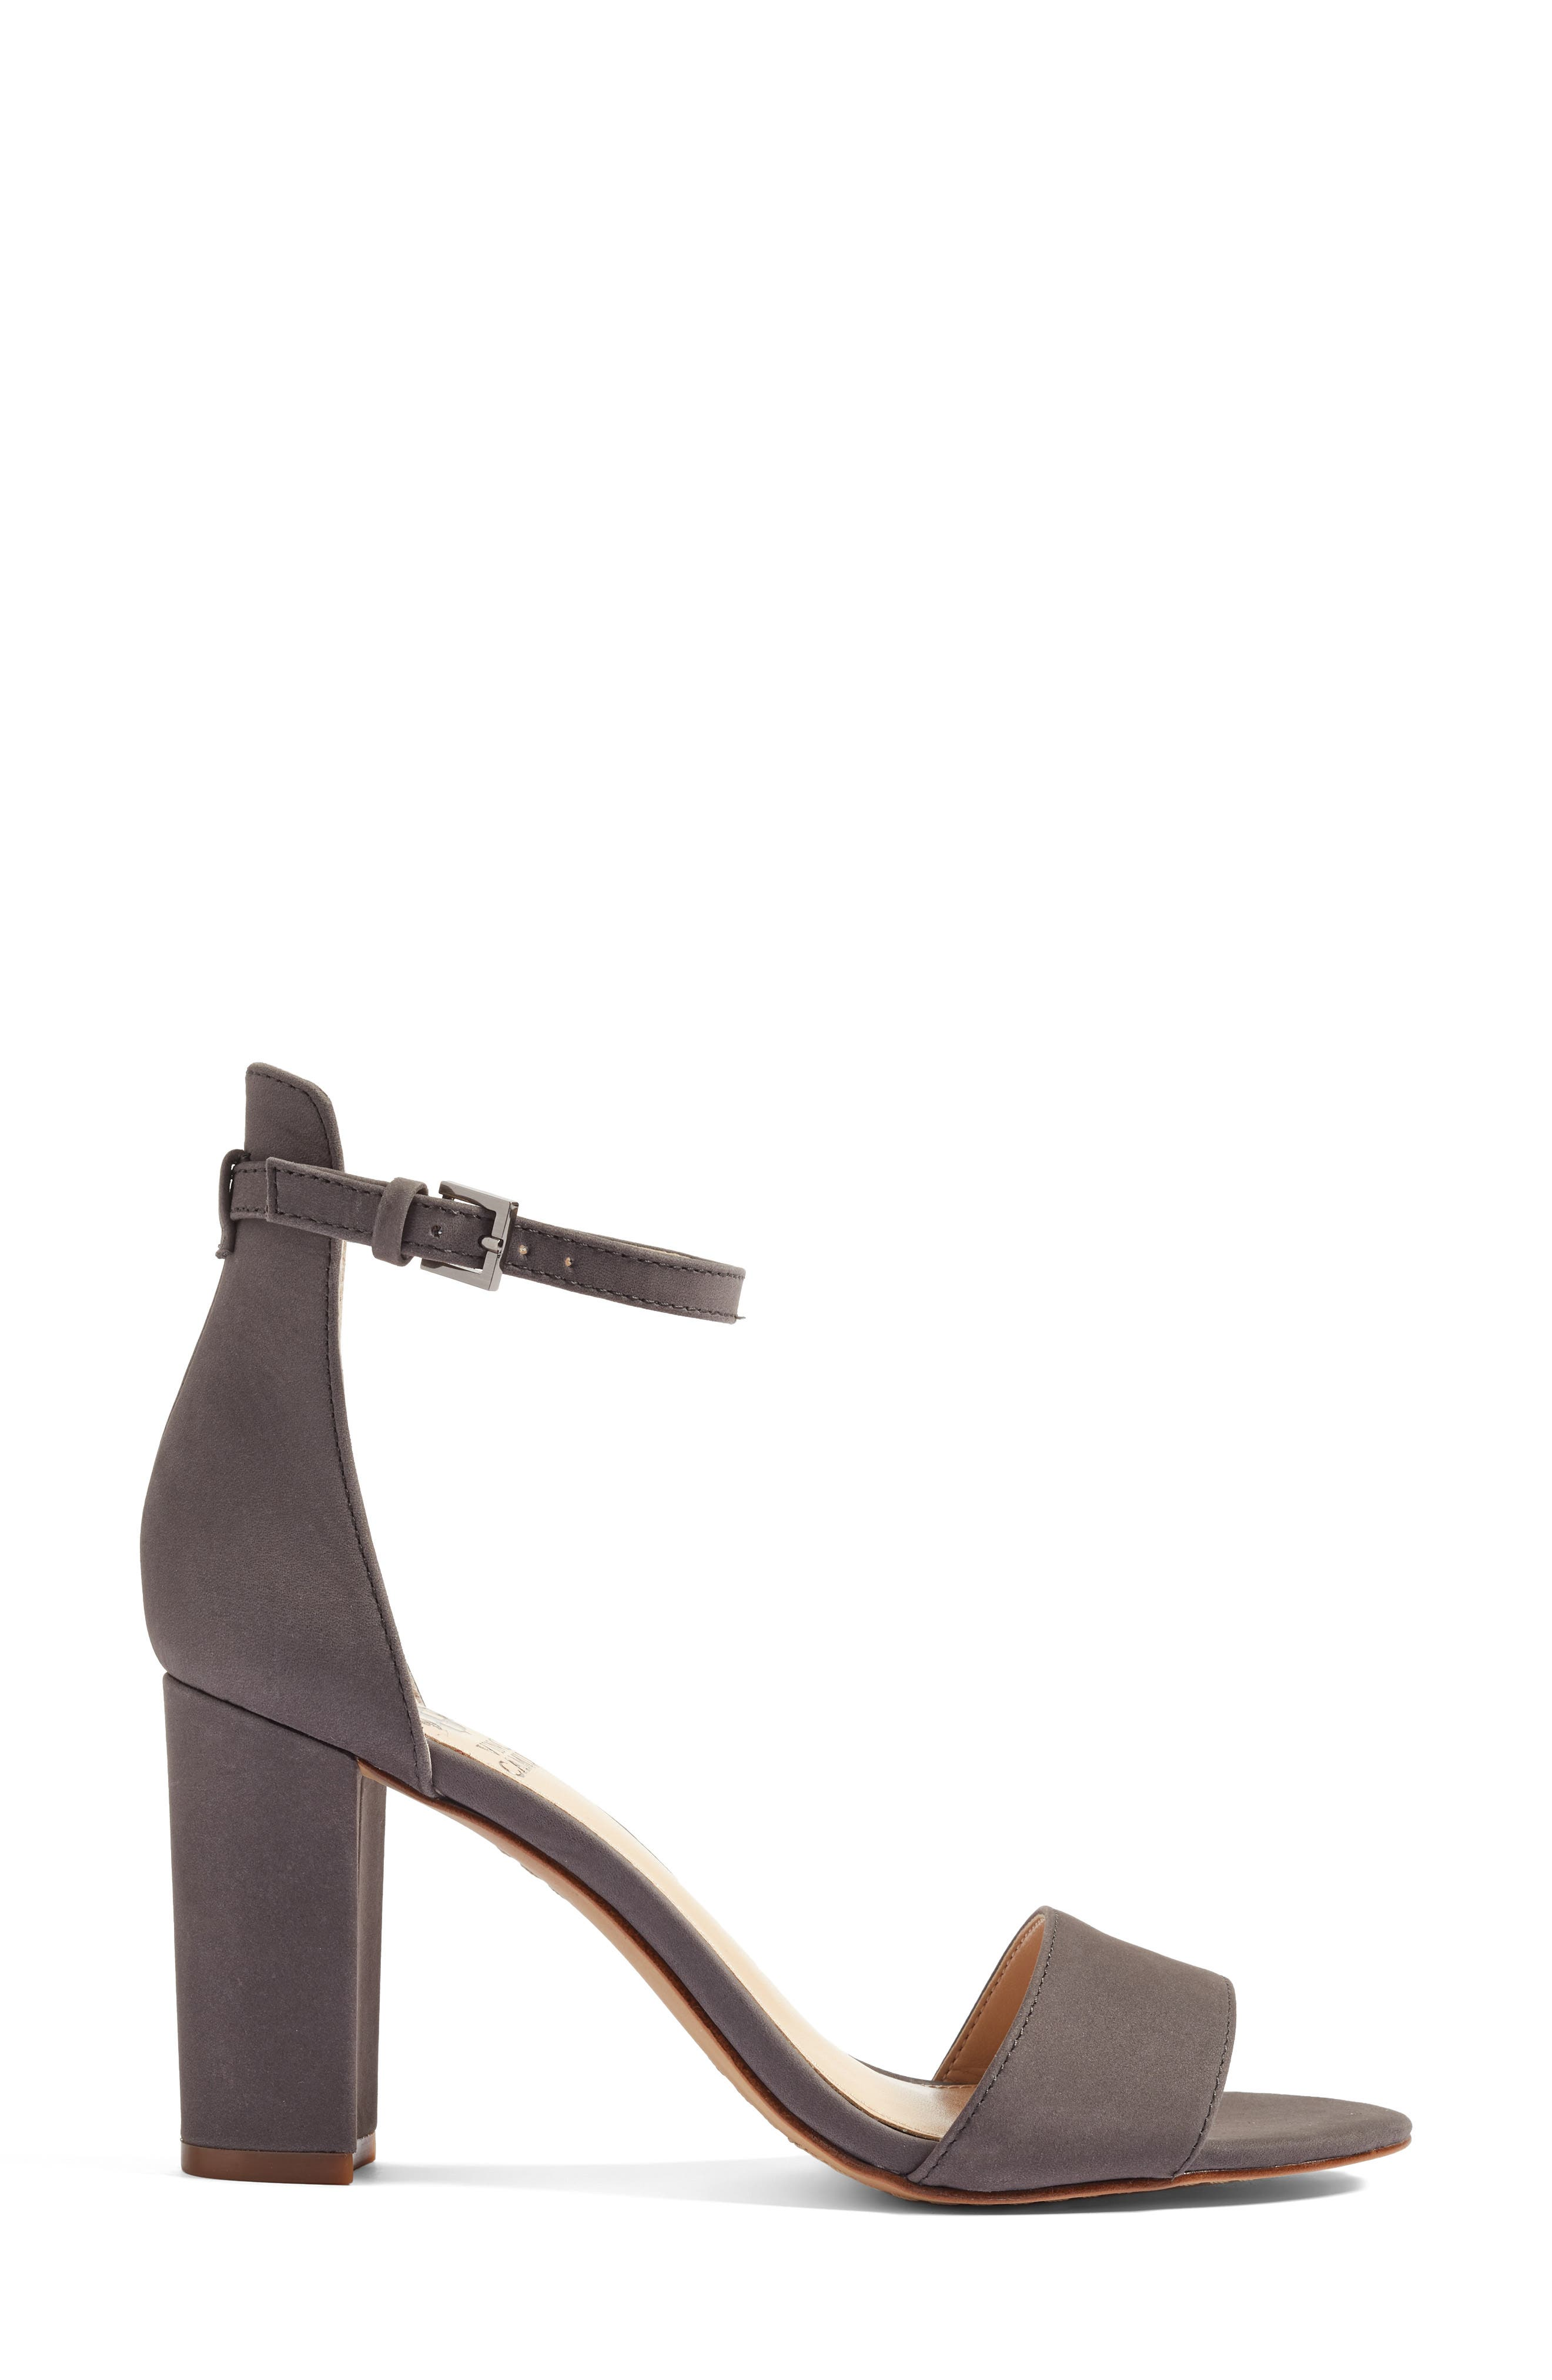 Alternate Image 3  - Vince Camuto Corlina Ankle Strap Sandal (Women) (Nordstrom Exclusive)